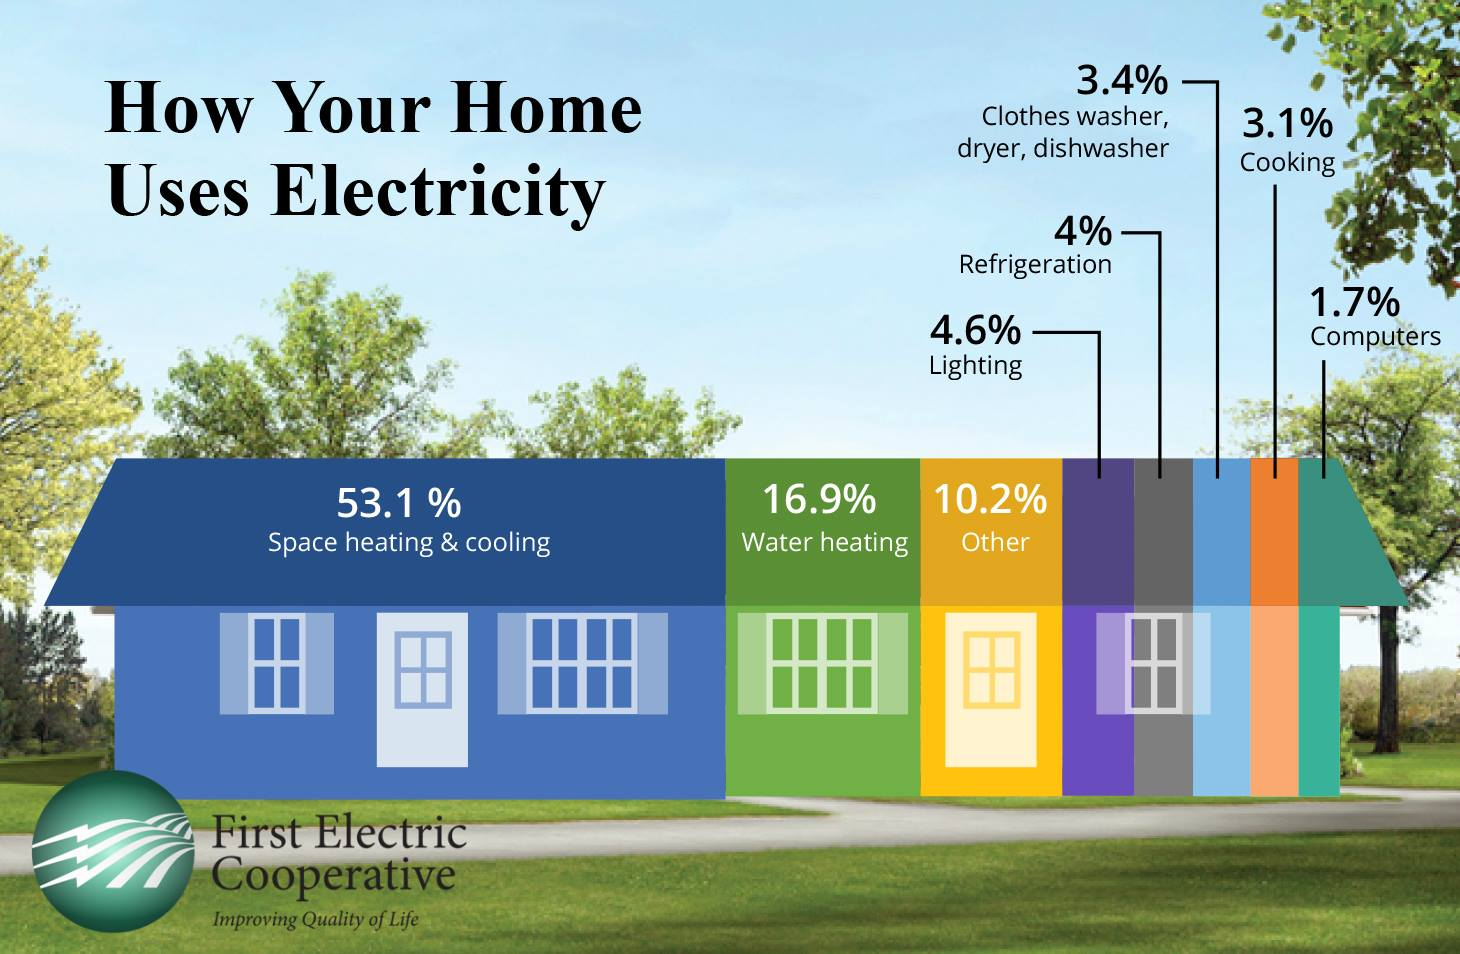 Image of typical home electric usage broken down into percentages of the home